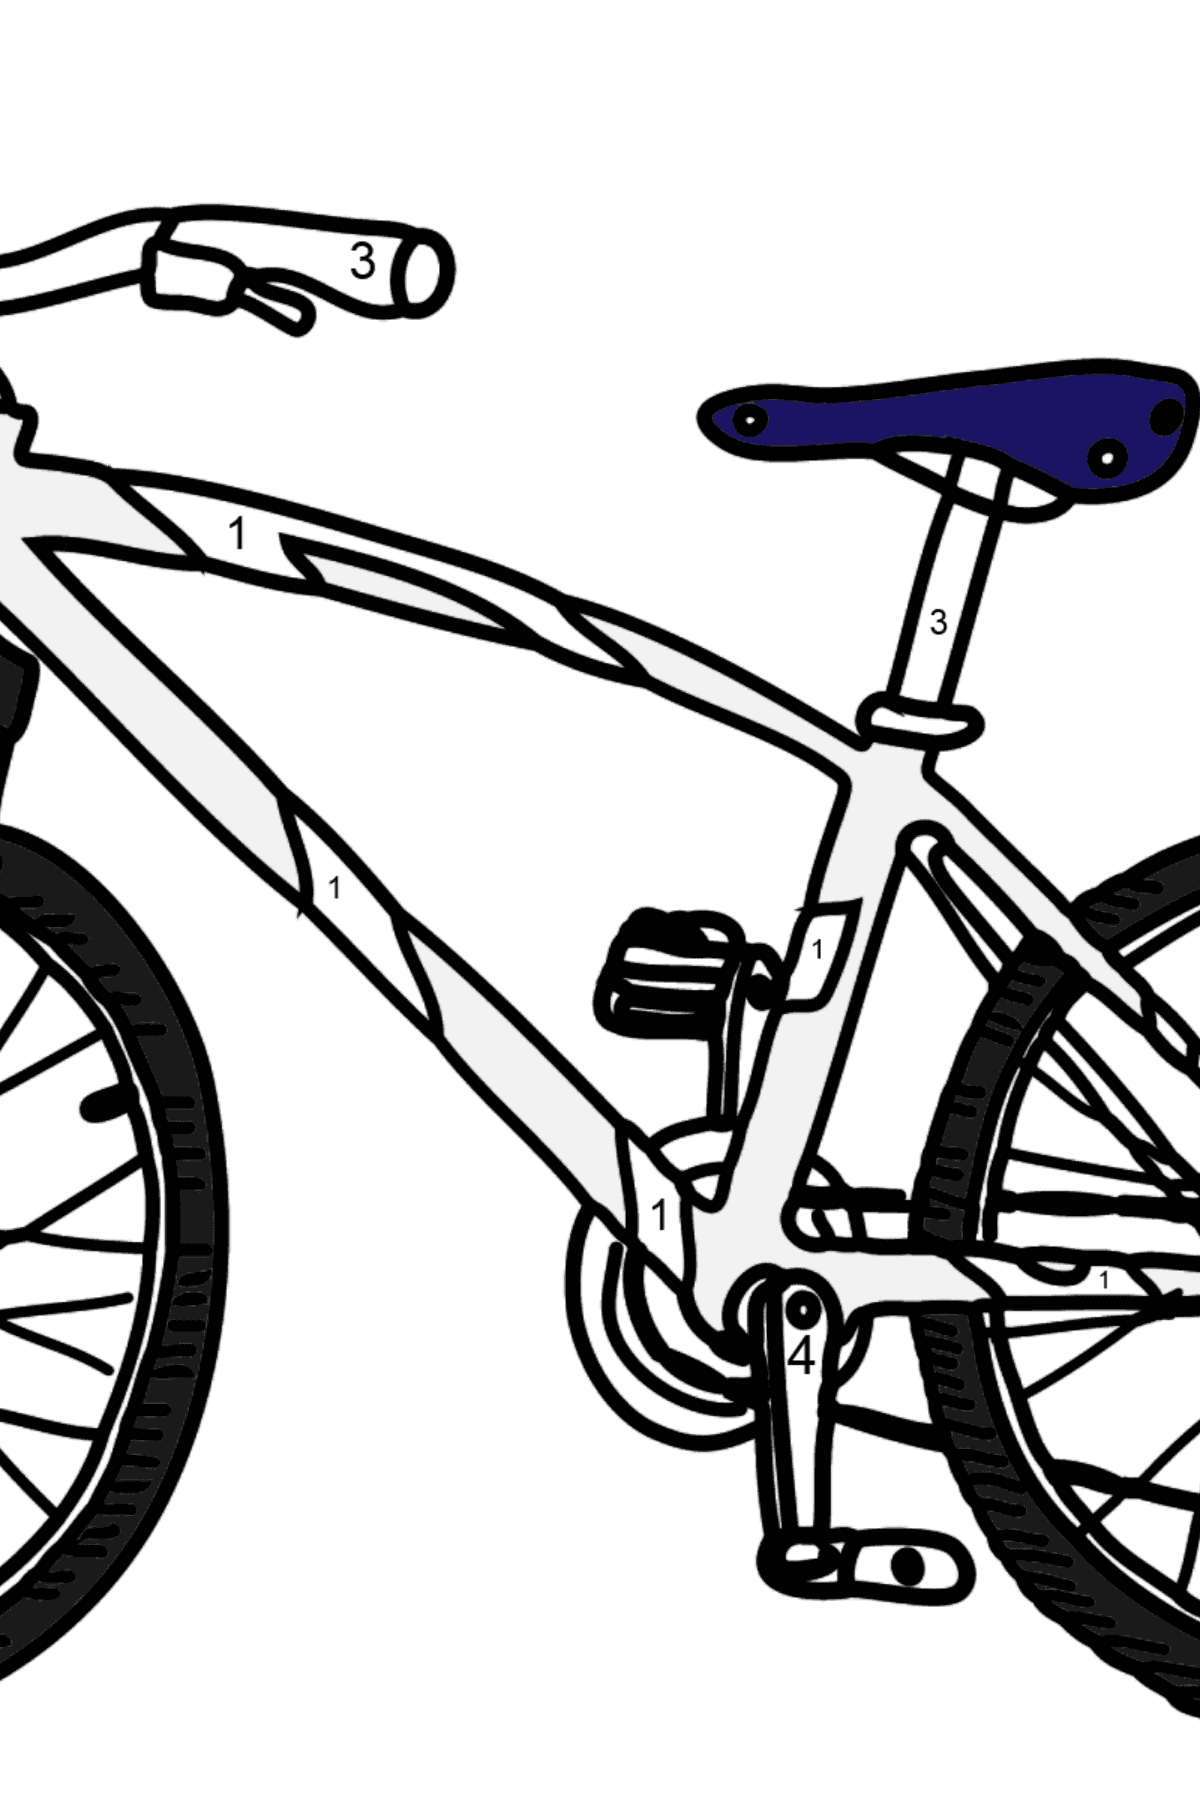 Coloring Page - A Sport Bike - Coloring by Numbers for Kids